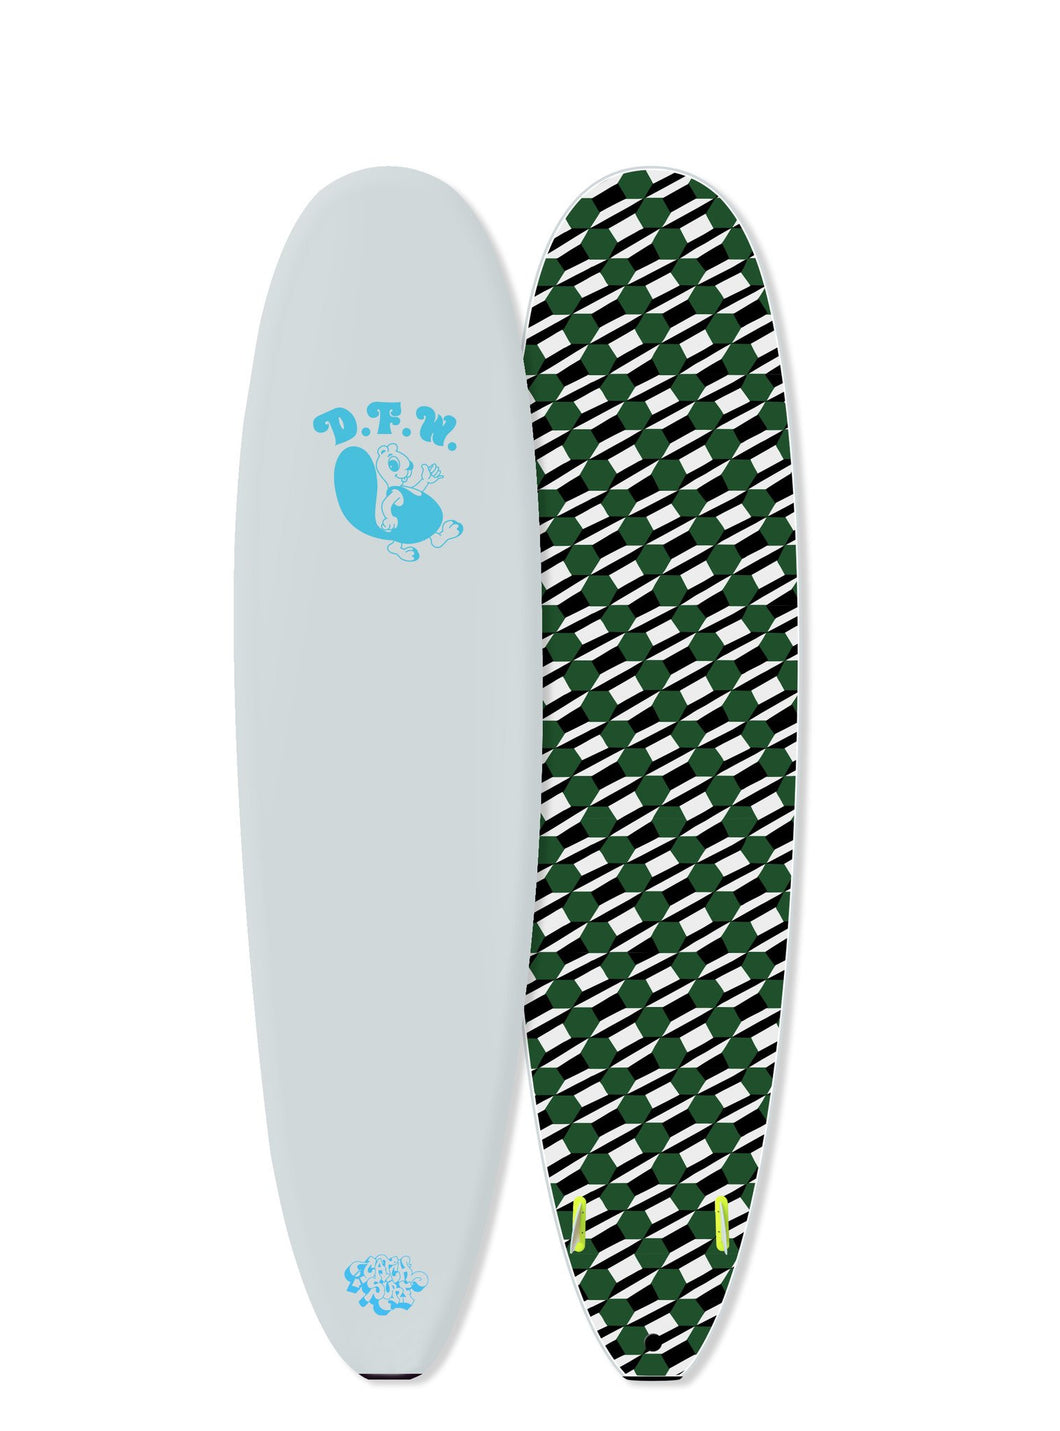 7' Odysea DFW Edition Barry McGee Log Twin Fin